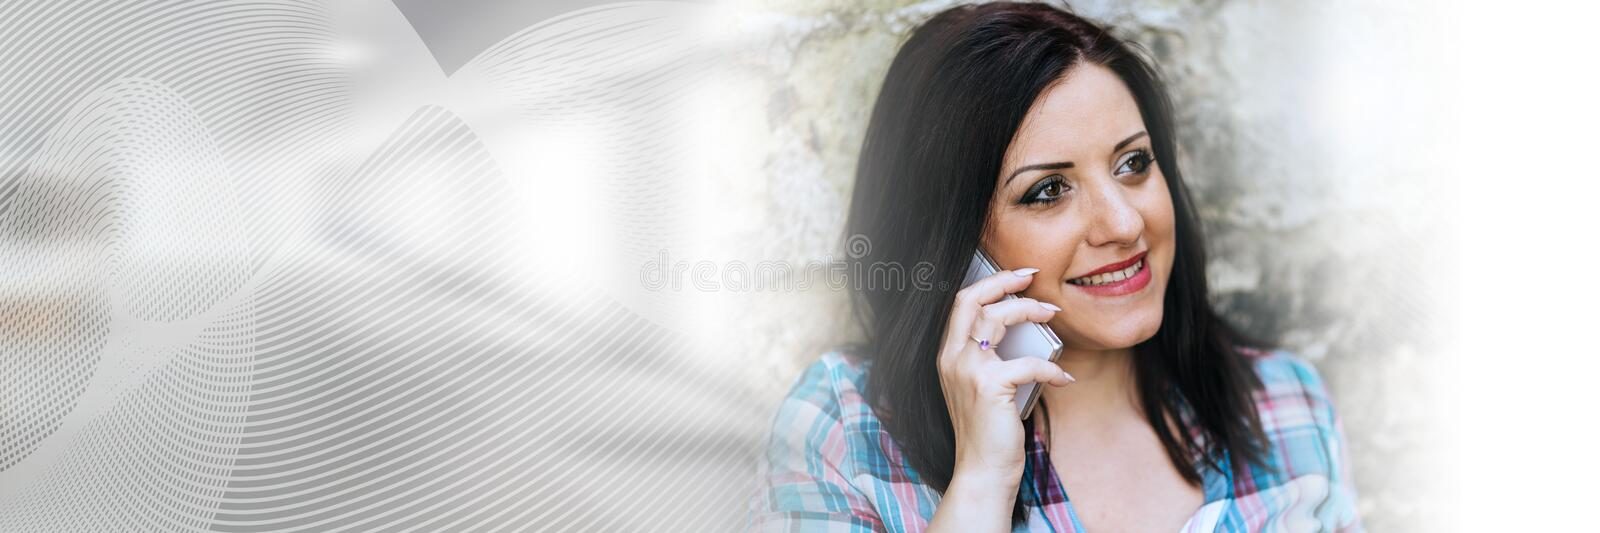 Portrait of beautiful young woman using phone, light effect; panoramic banner stock photography